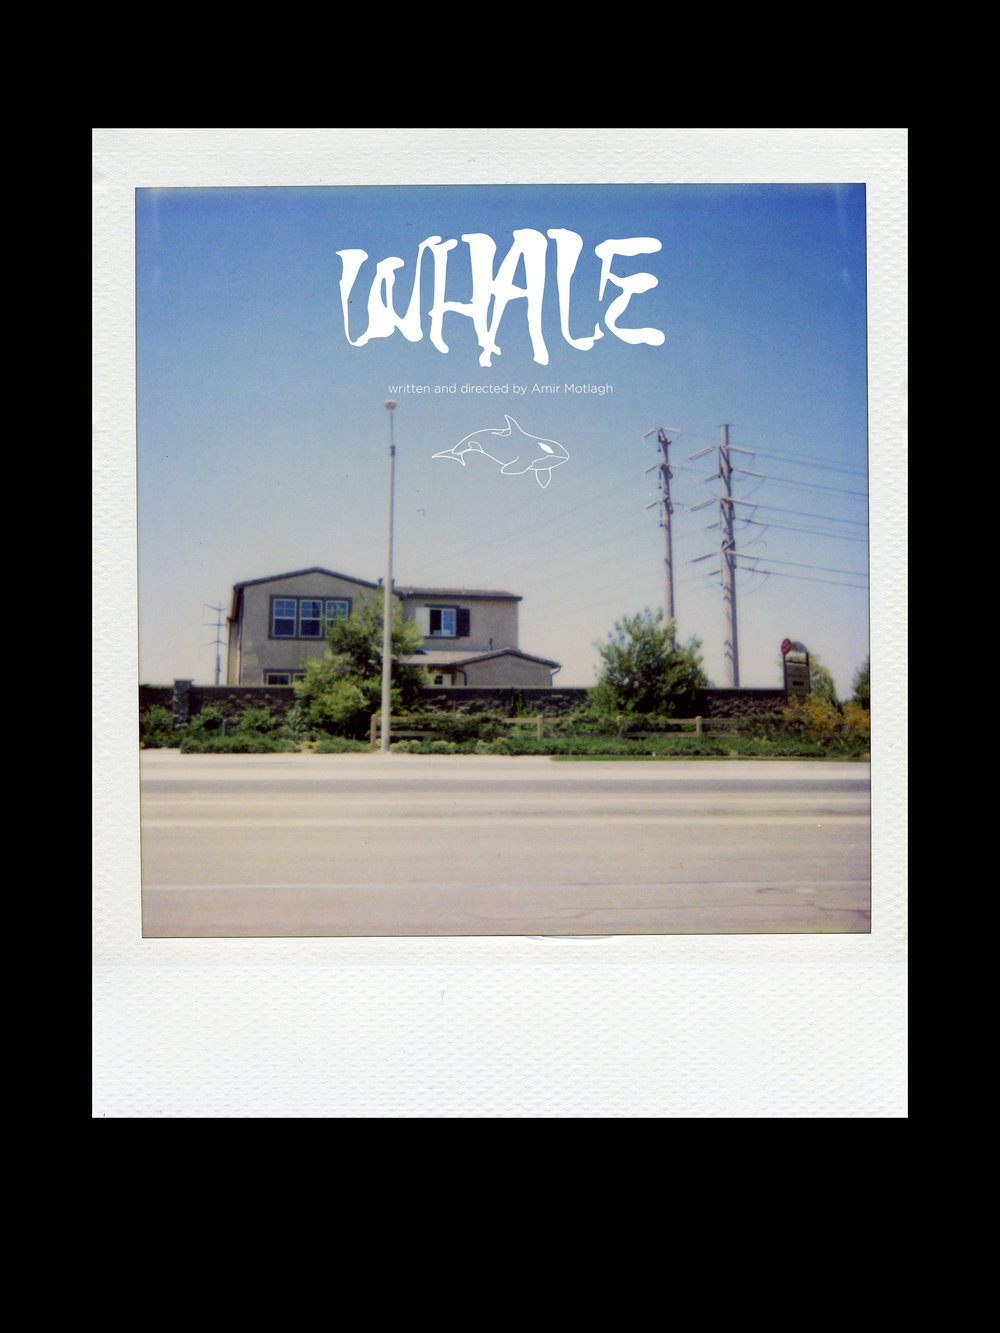 WHALE_2_3_poster_redesign_2018.jpg